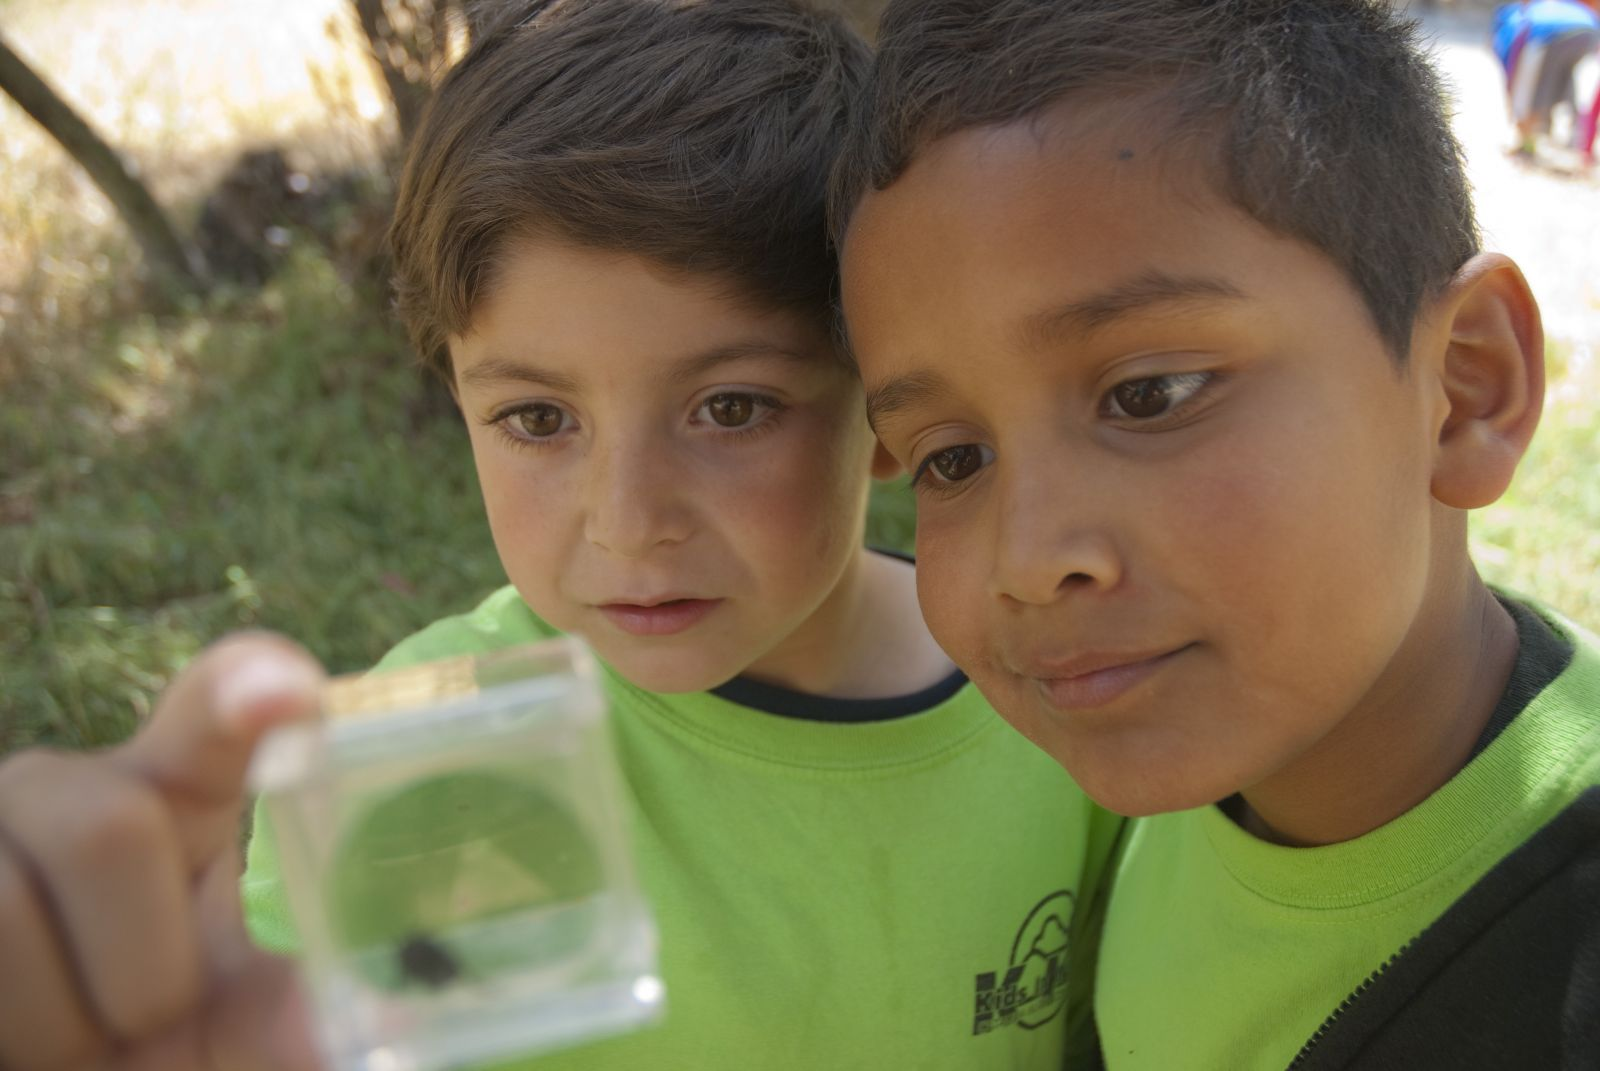 Kids In Nature sessions are held at the Conservancy's Nature Center at Avalon Canyon.